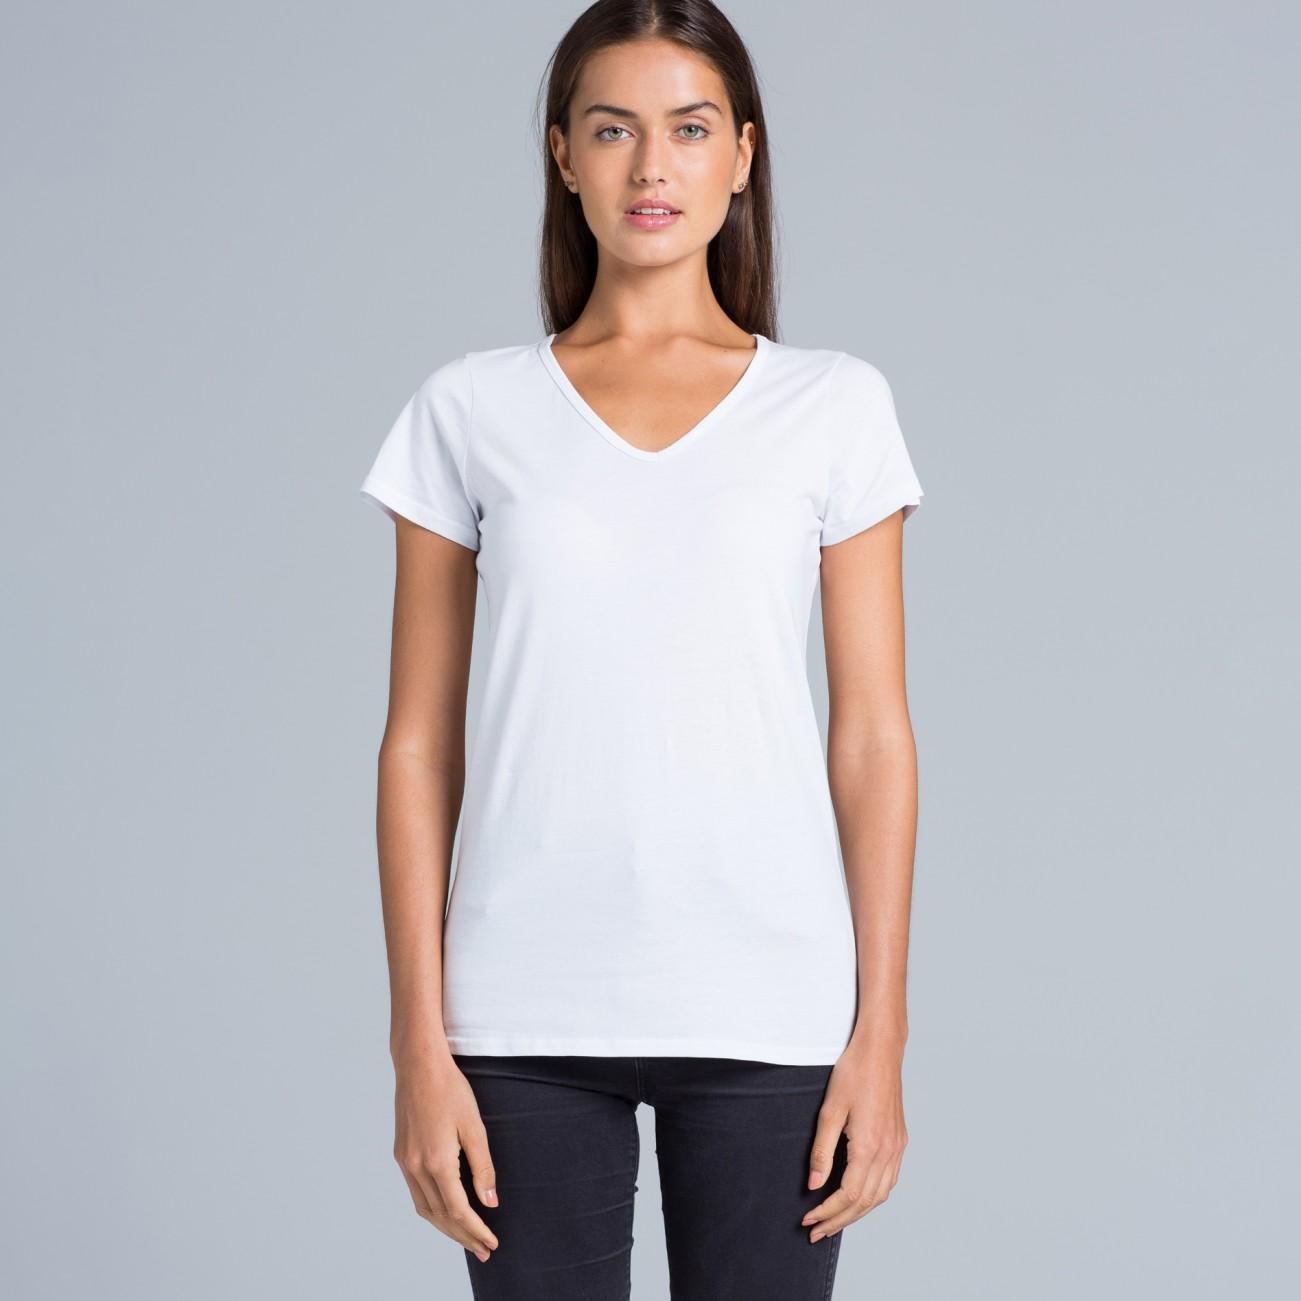 Shop for mens v neck tee shirt online at Target. Free shipping on purchases over $35 and save 5% every day with your Target REDcard.